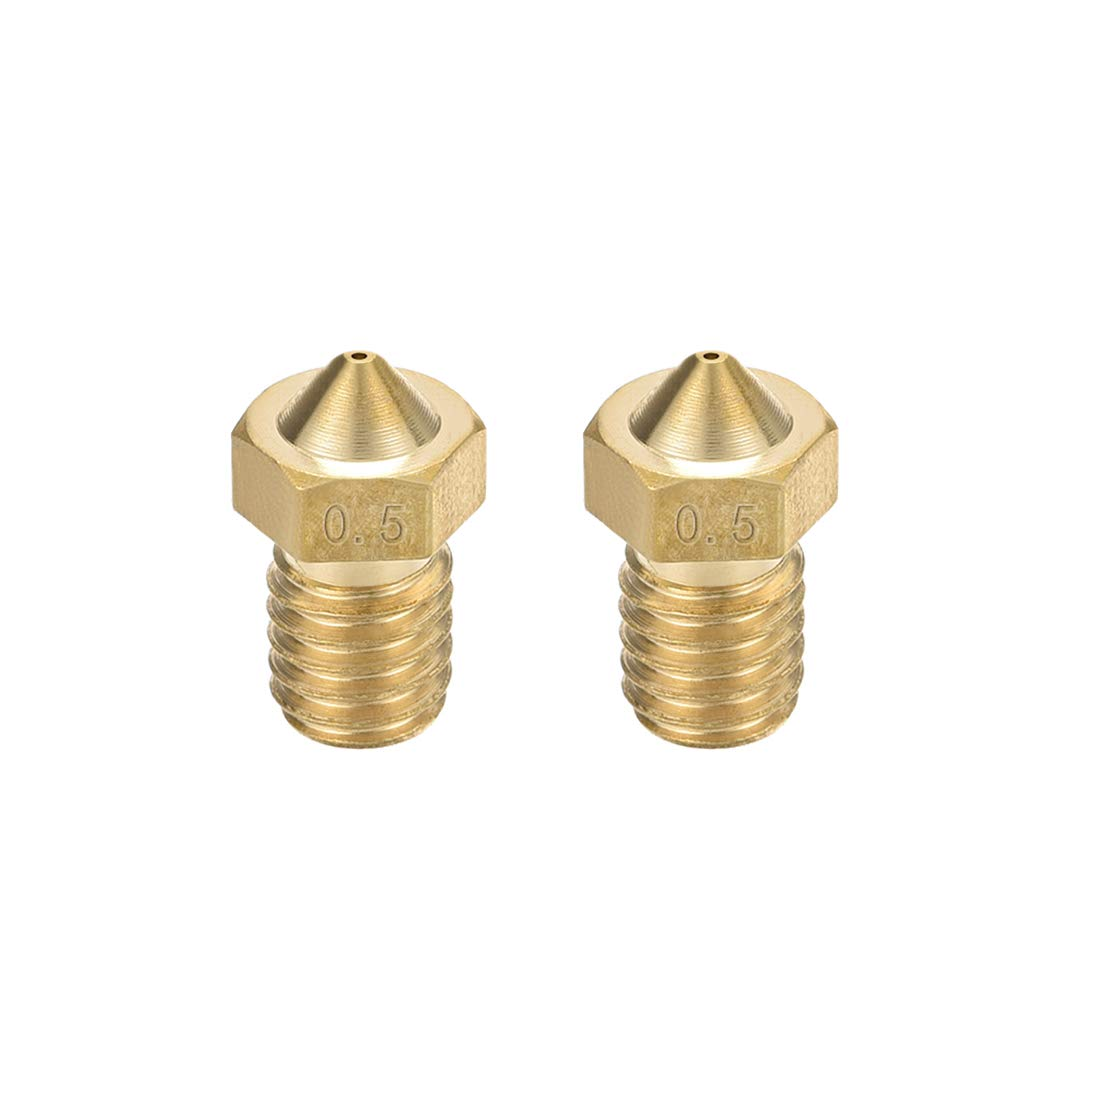 uxcell At the price 2pcs 3D Printer Nozzle Pri shopping 0.5mm Brass Extruder V6